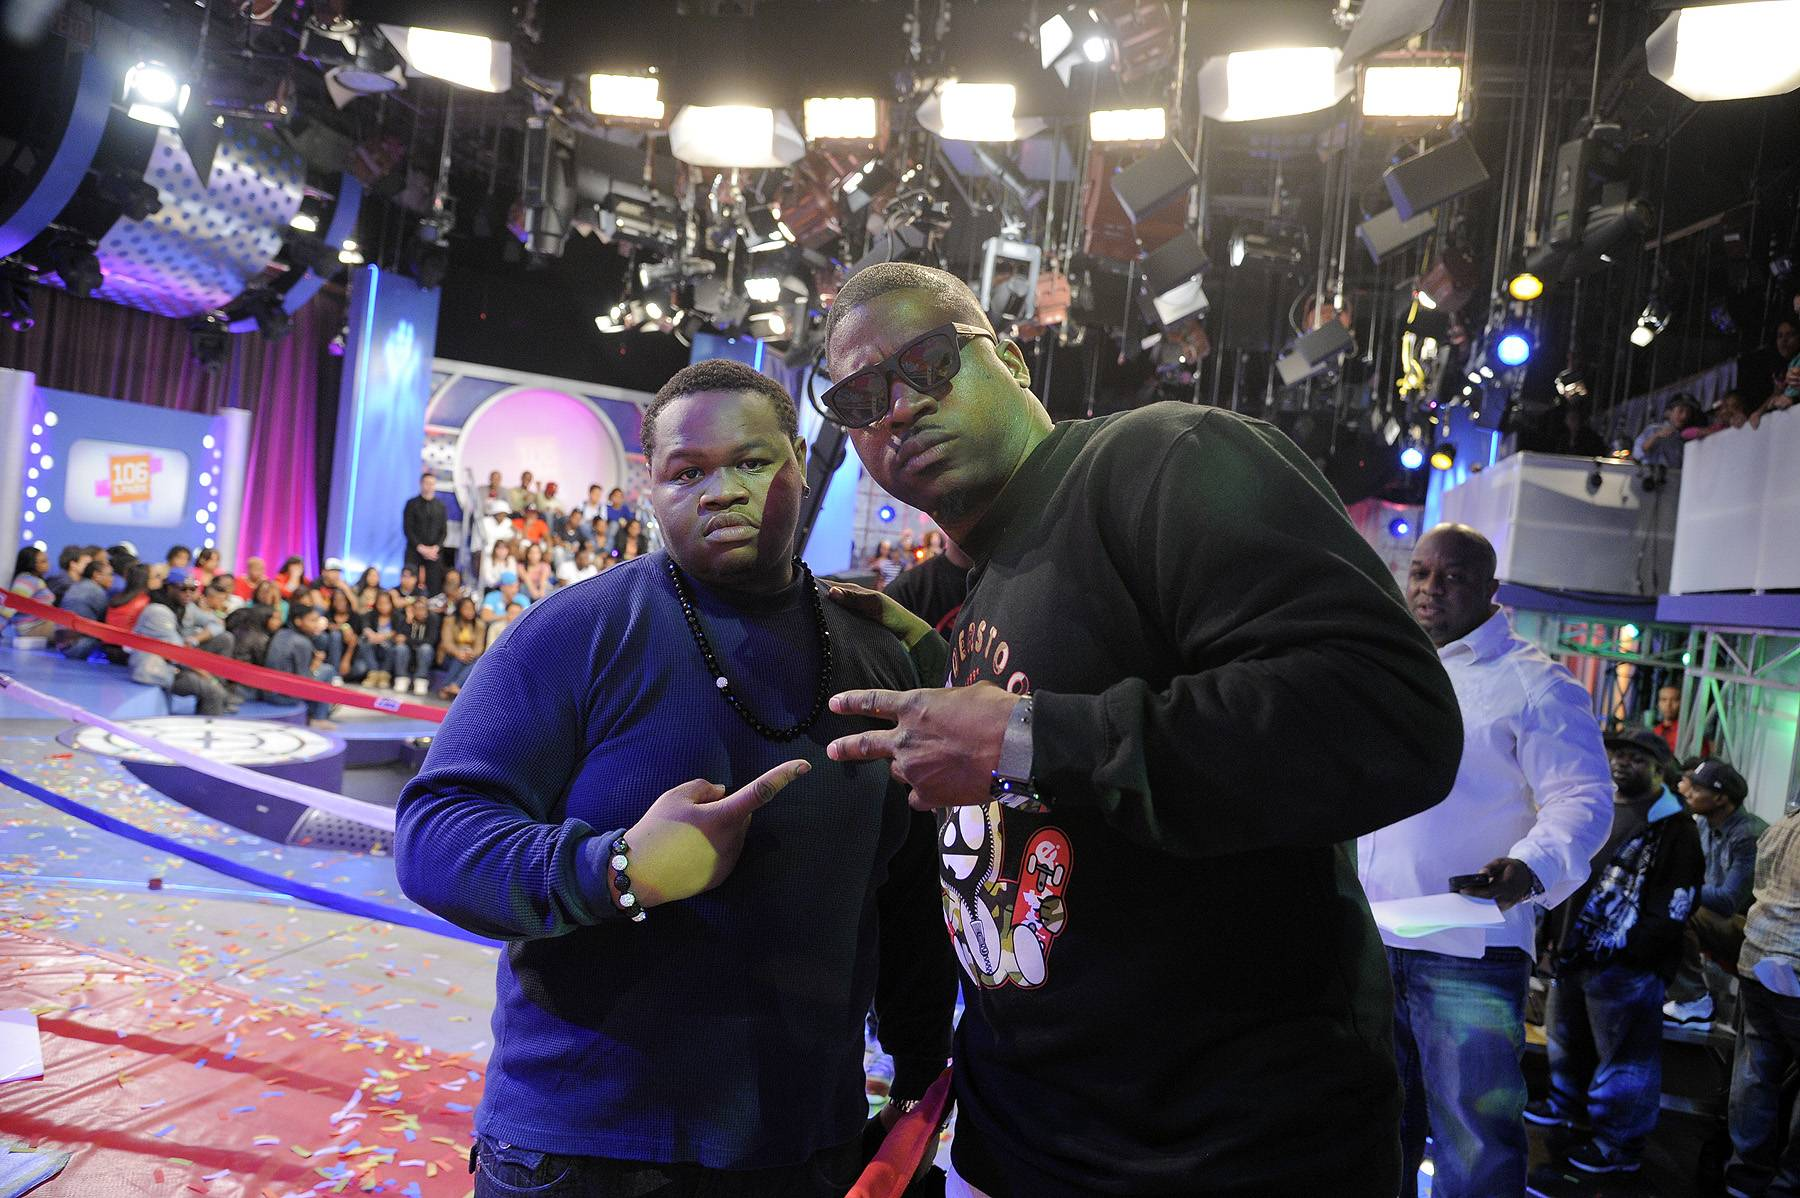 040912-shows-106-park-freestyle-friday-relly-david-banner.jpg